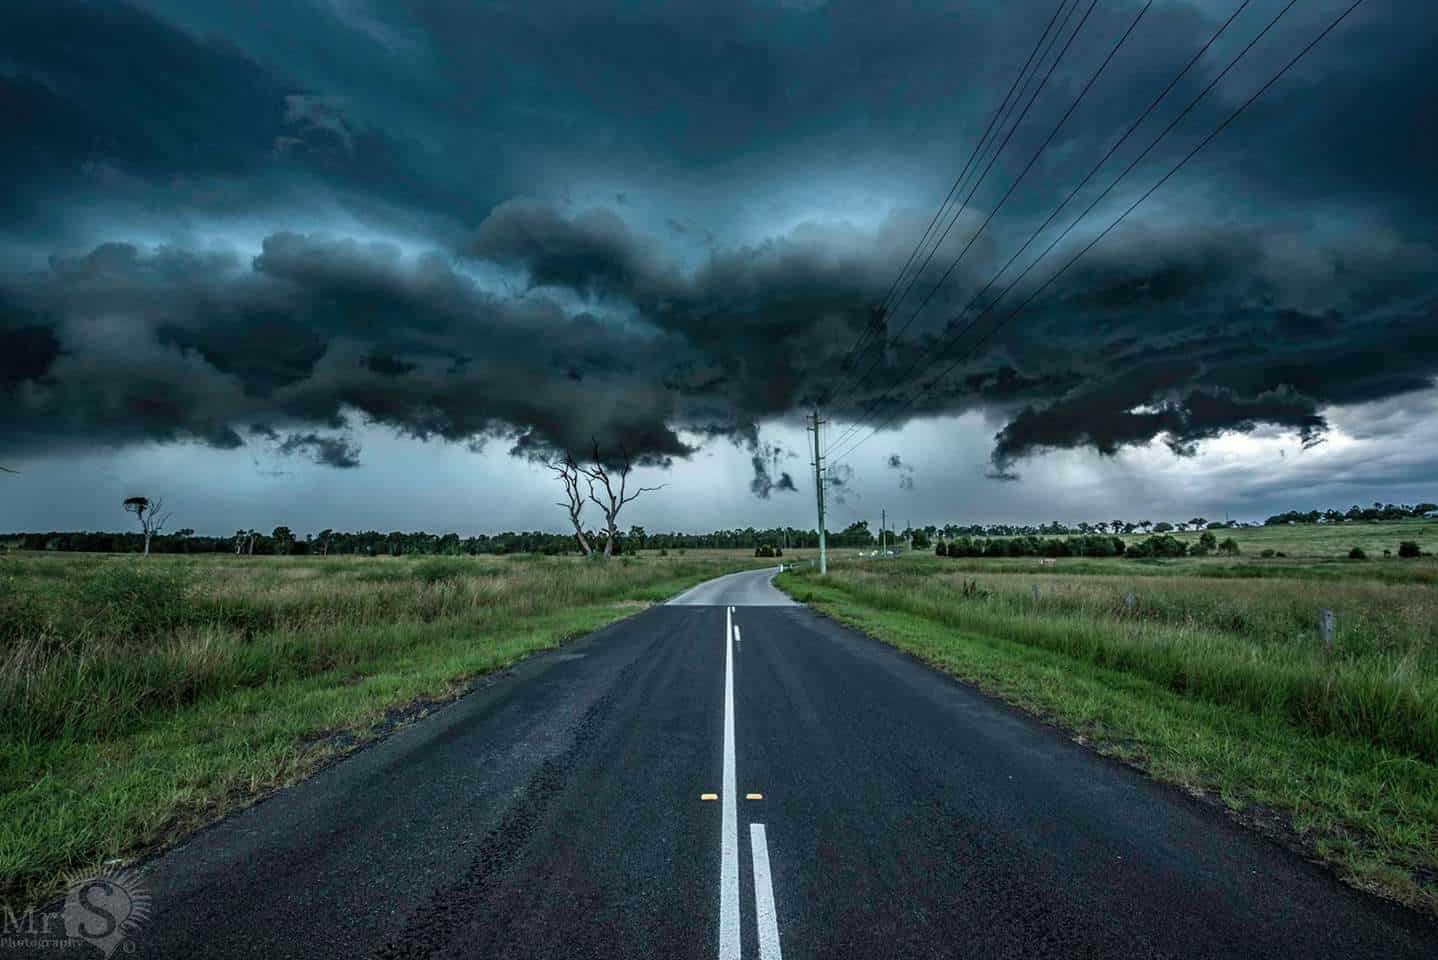 One of the last storms I seen this season in Qld Australia. I was shooting the far left when the cells speed picked up suddenly and I was faced with this view just before leaving.